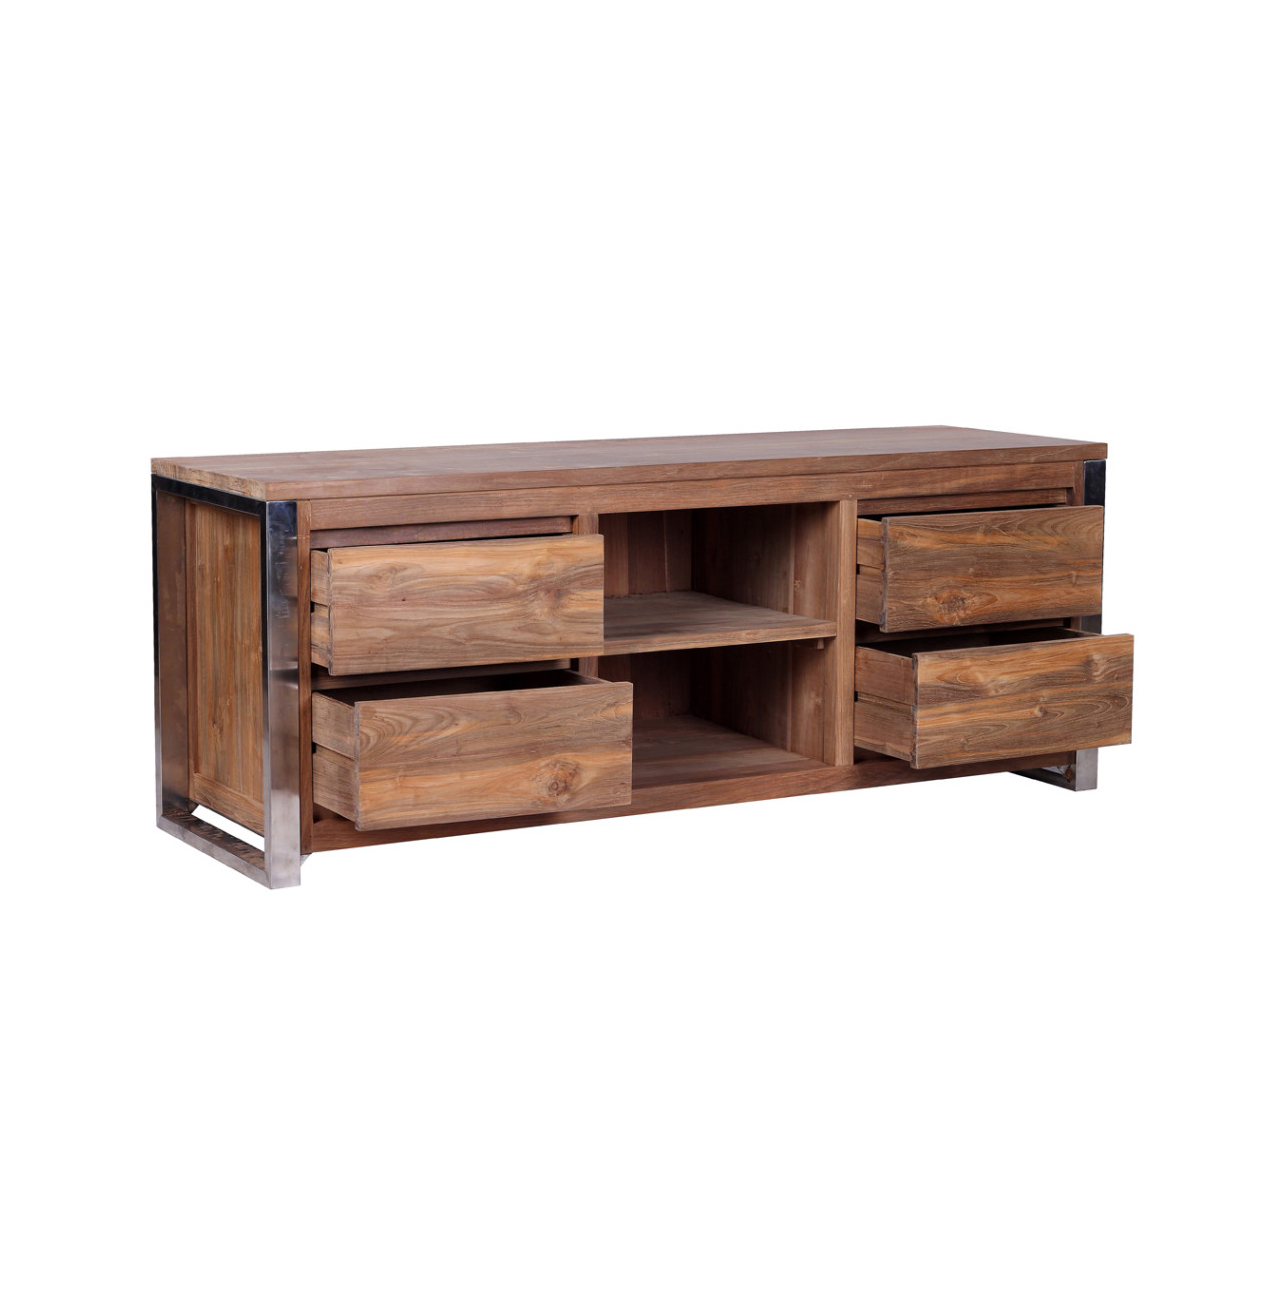 Rustic Wood Tv Cabinets Intended For Favorite Rarem Reclaimed Wood Tv Stand – Reclaimed Teak And Stainless Steel (View 5 of 20)